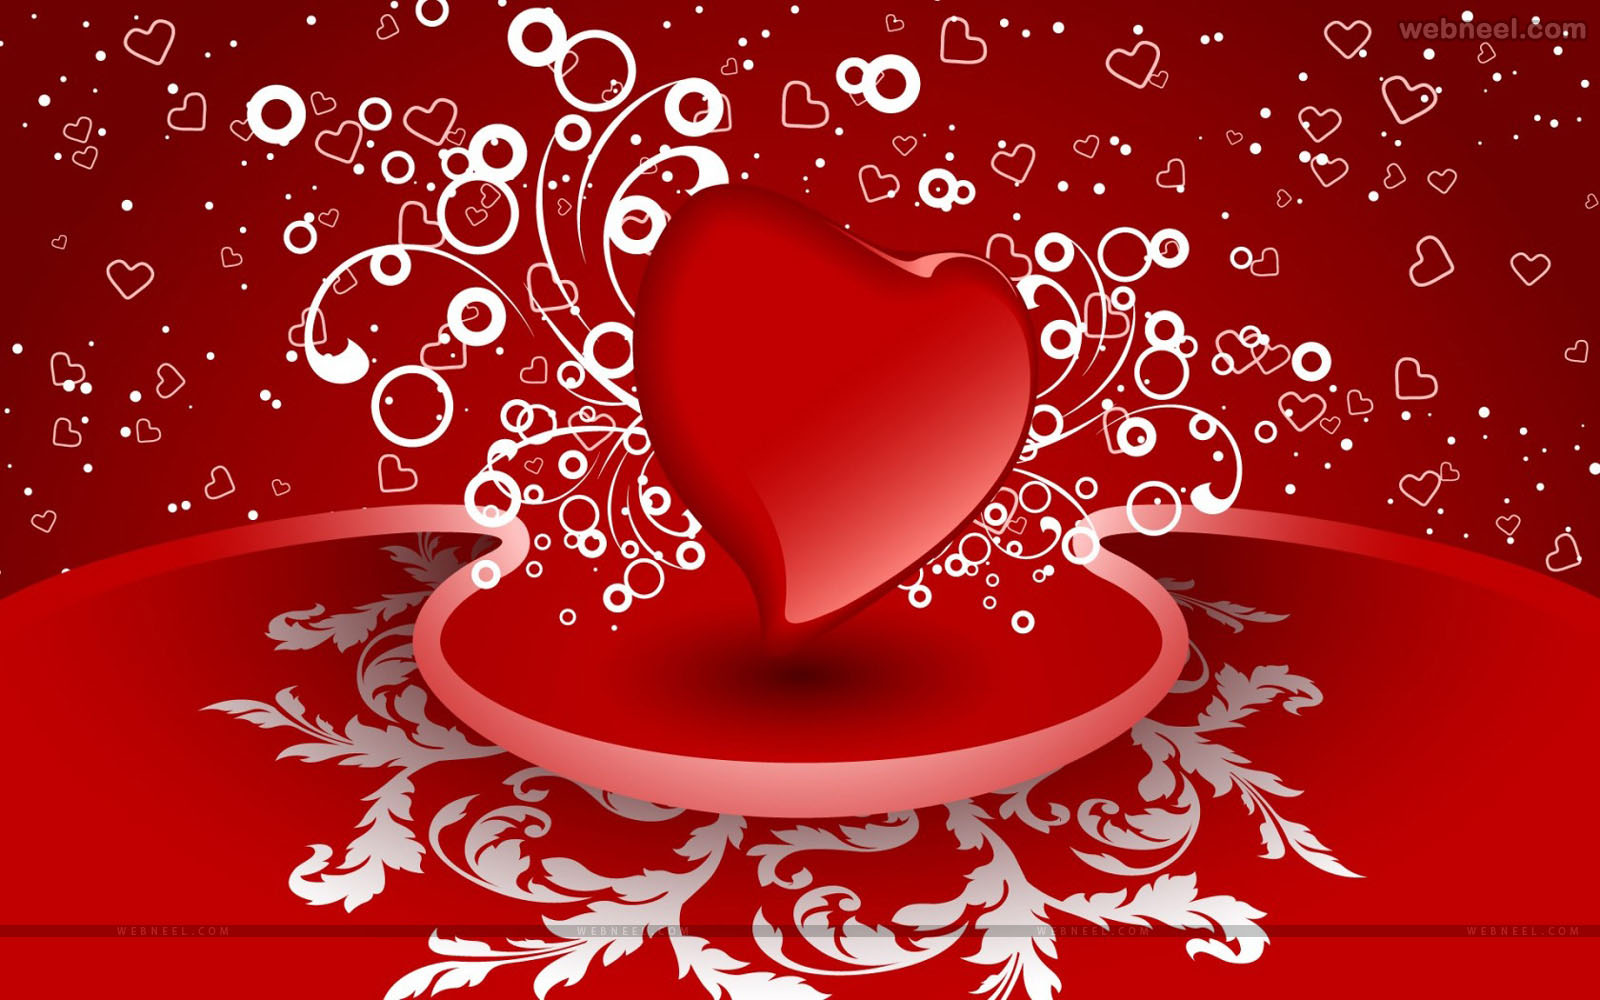 Red Heart Romantic Valentine Wallpaper Hd Wallpaper